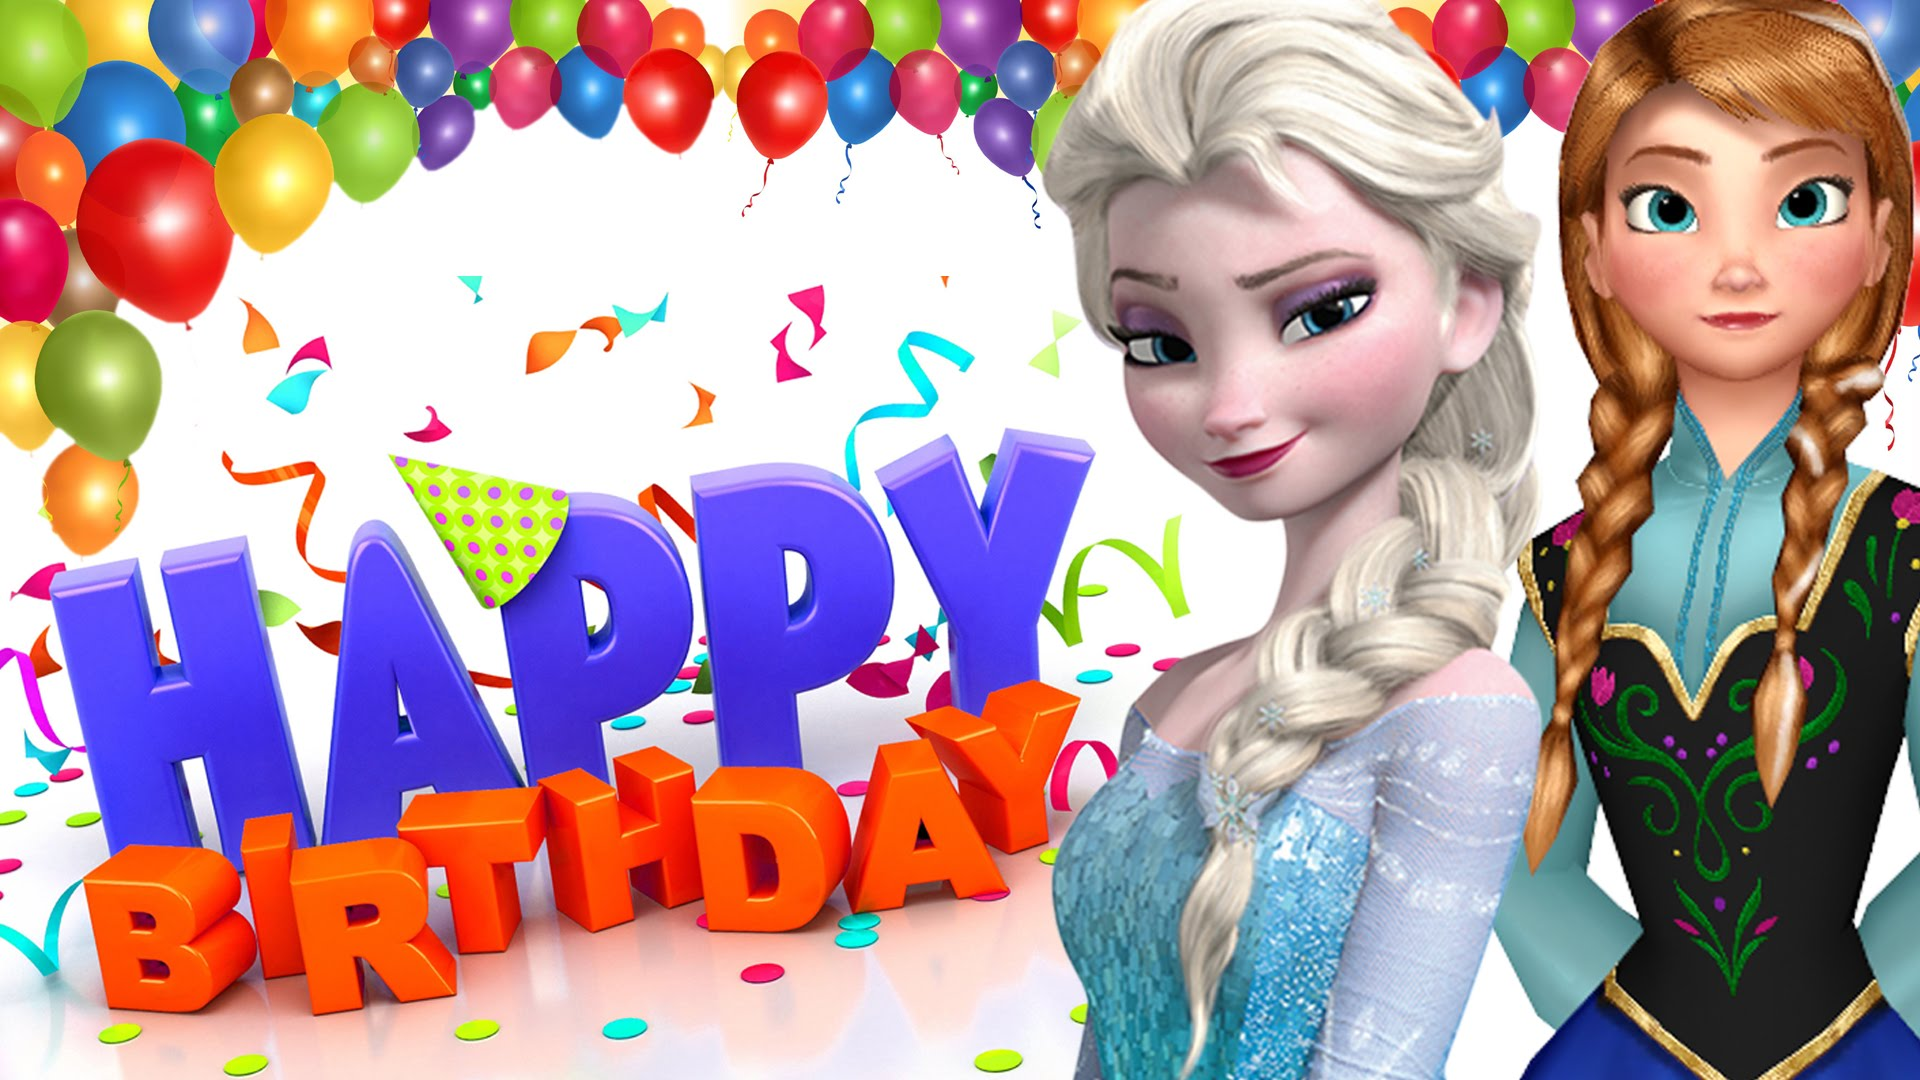 frozen wallpaper for birthday ; cute-free-happy-birthday-greeting-cards-download